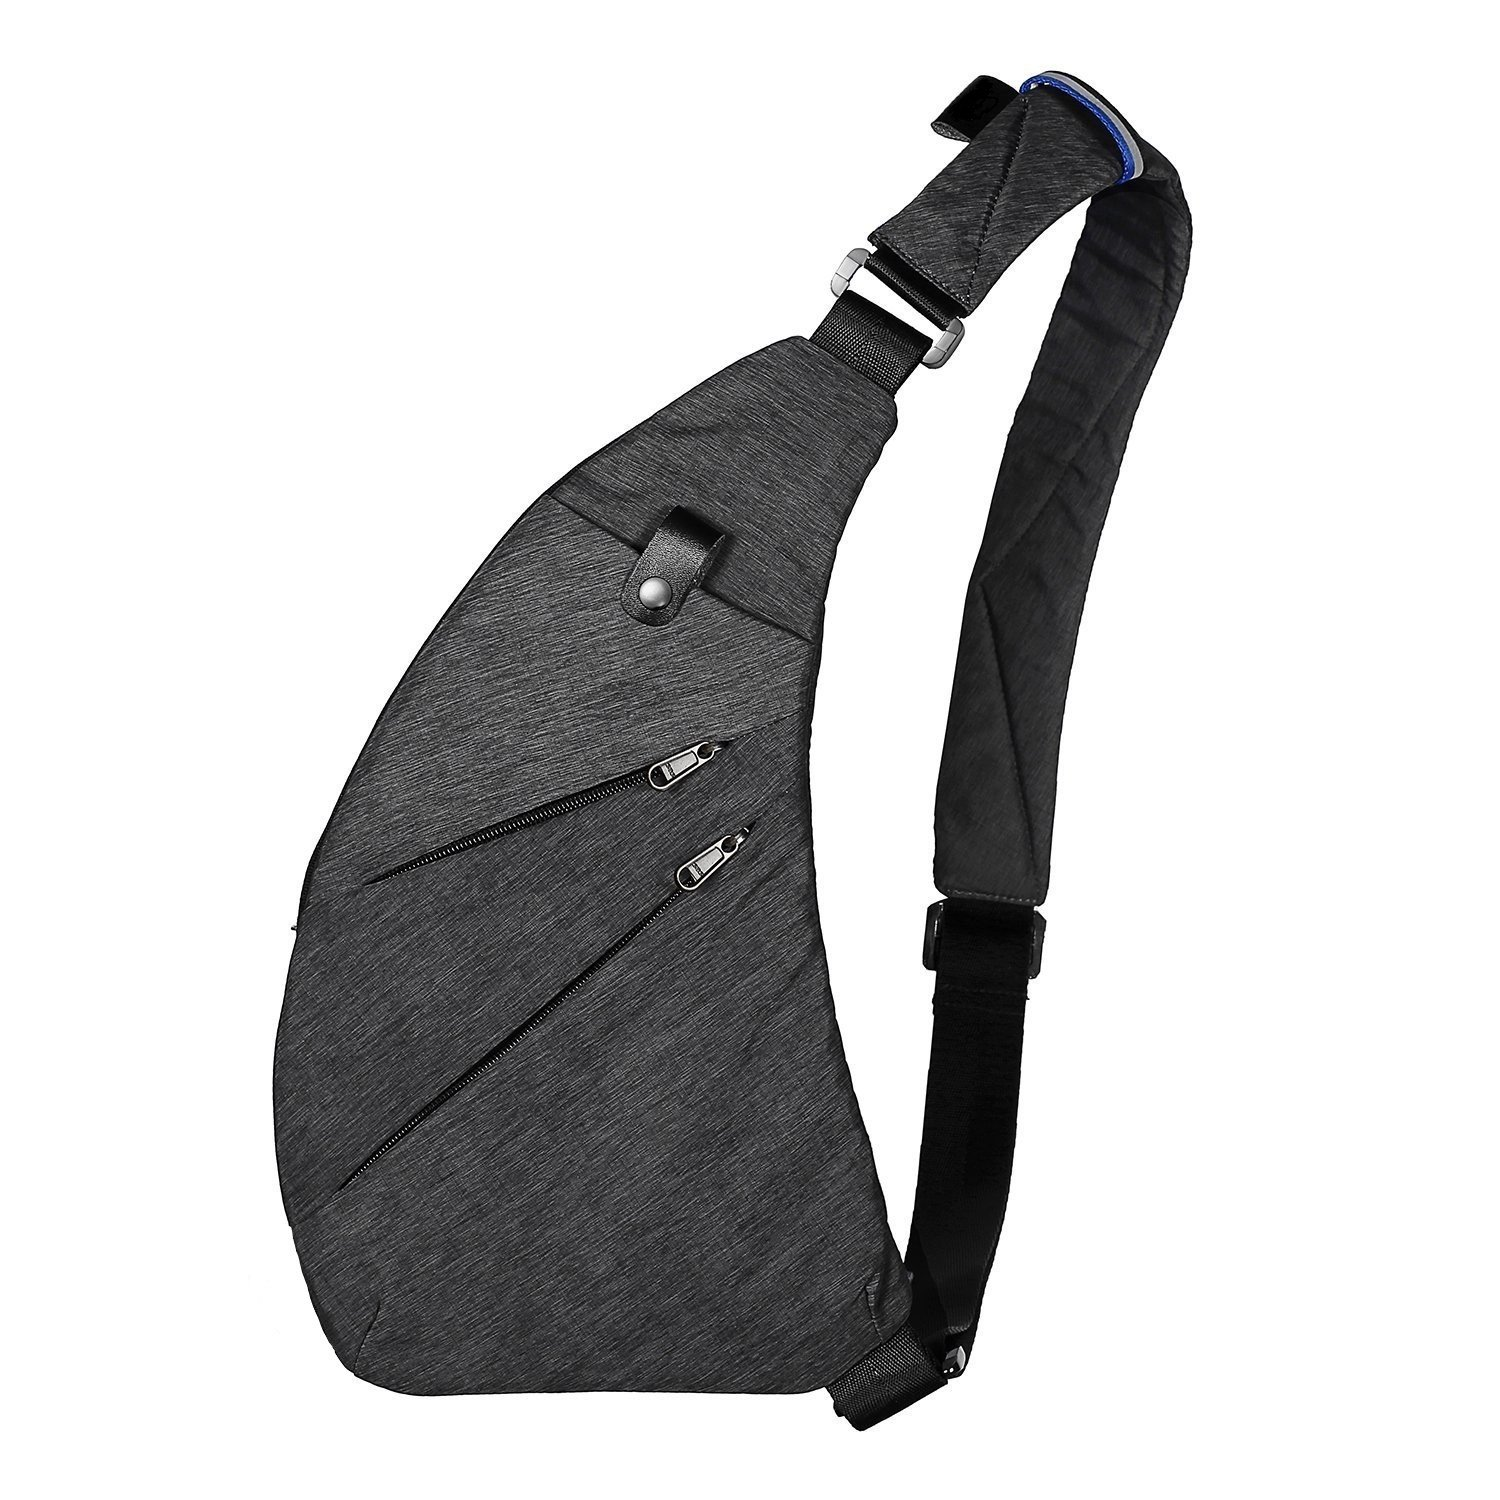 Sling Bag Shoulder Chest Bag Multi Purpose Anti Theft Cross Body Backpack Casual Pack Daypack Bags